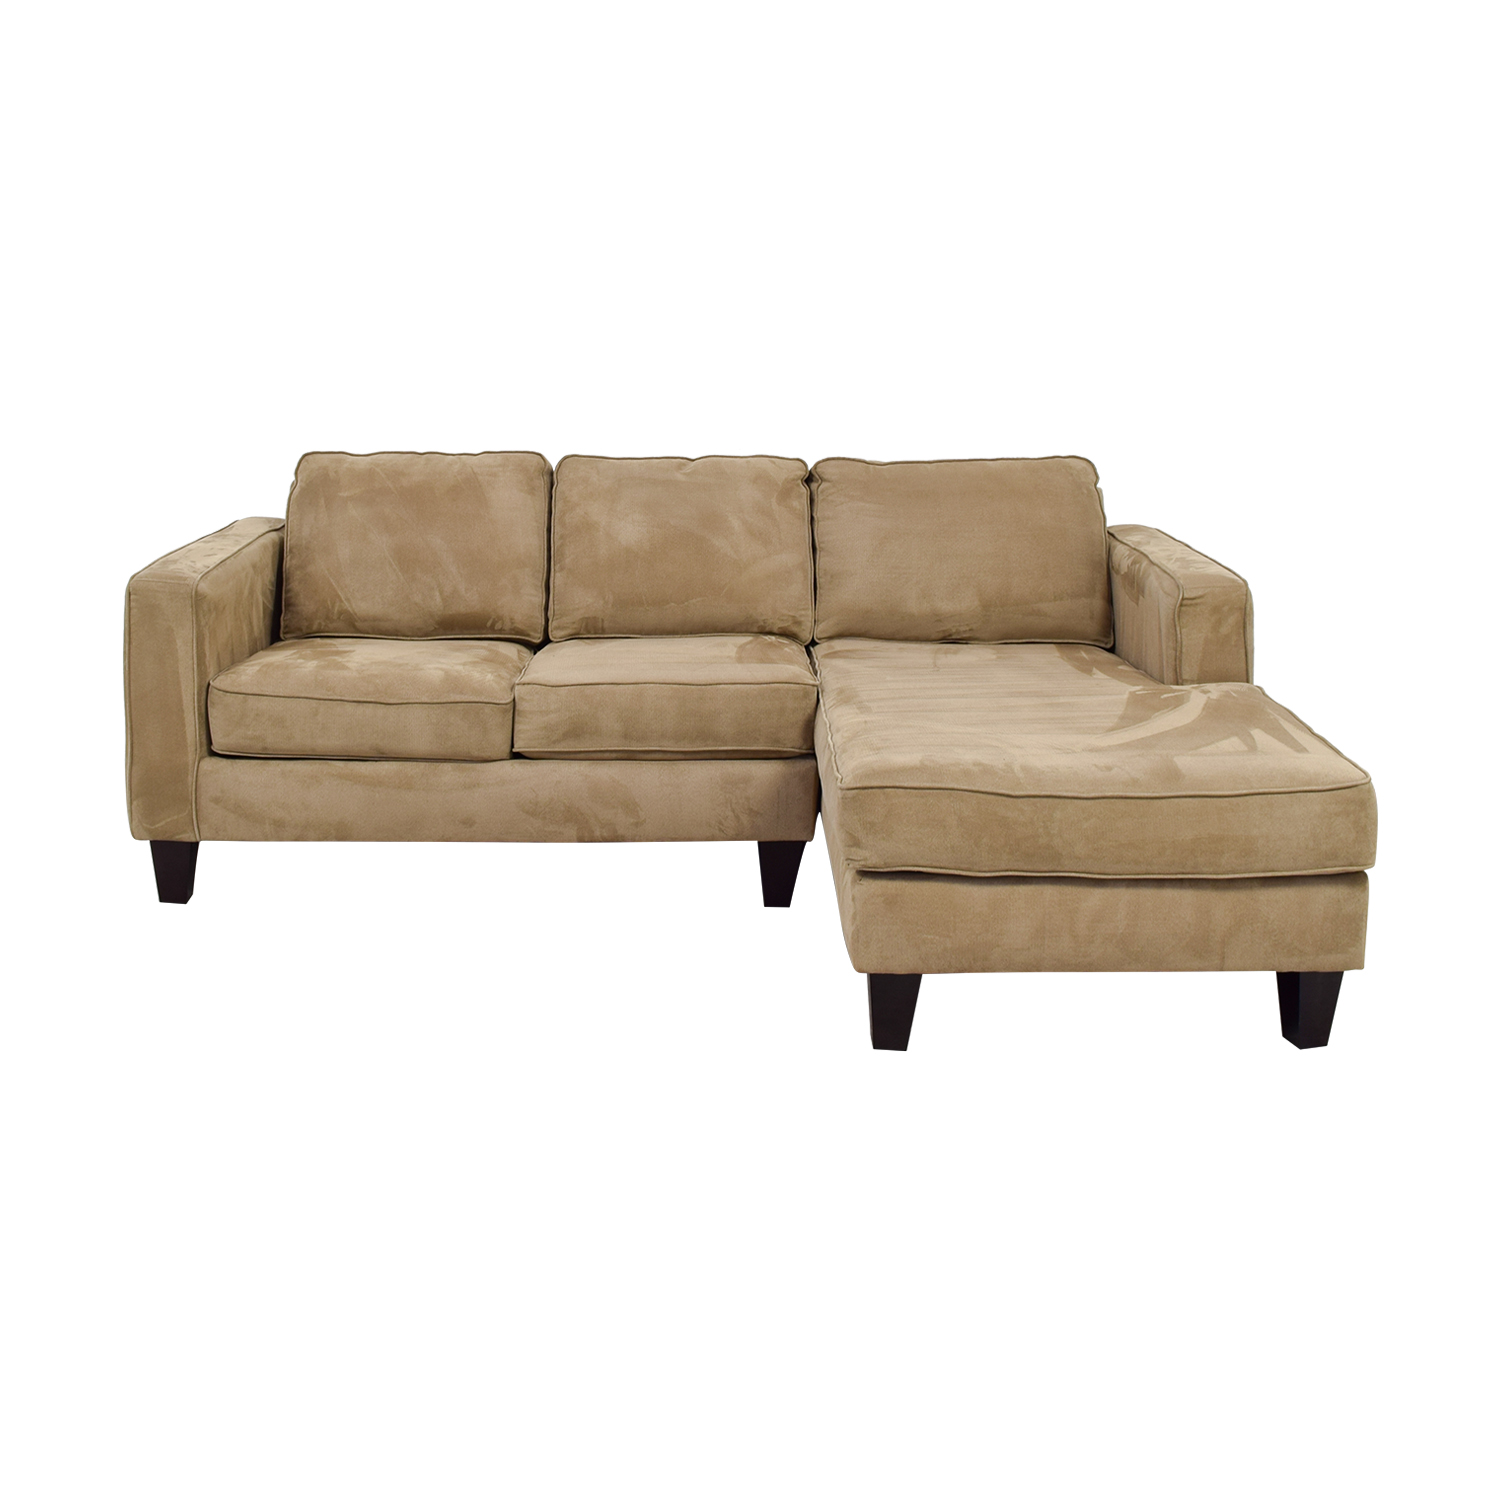 Pier 1 Pier 1 Tan L-Shaped Sectional Sofas